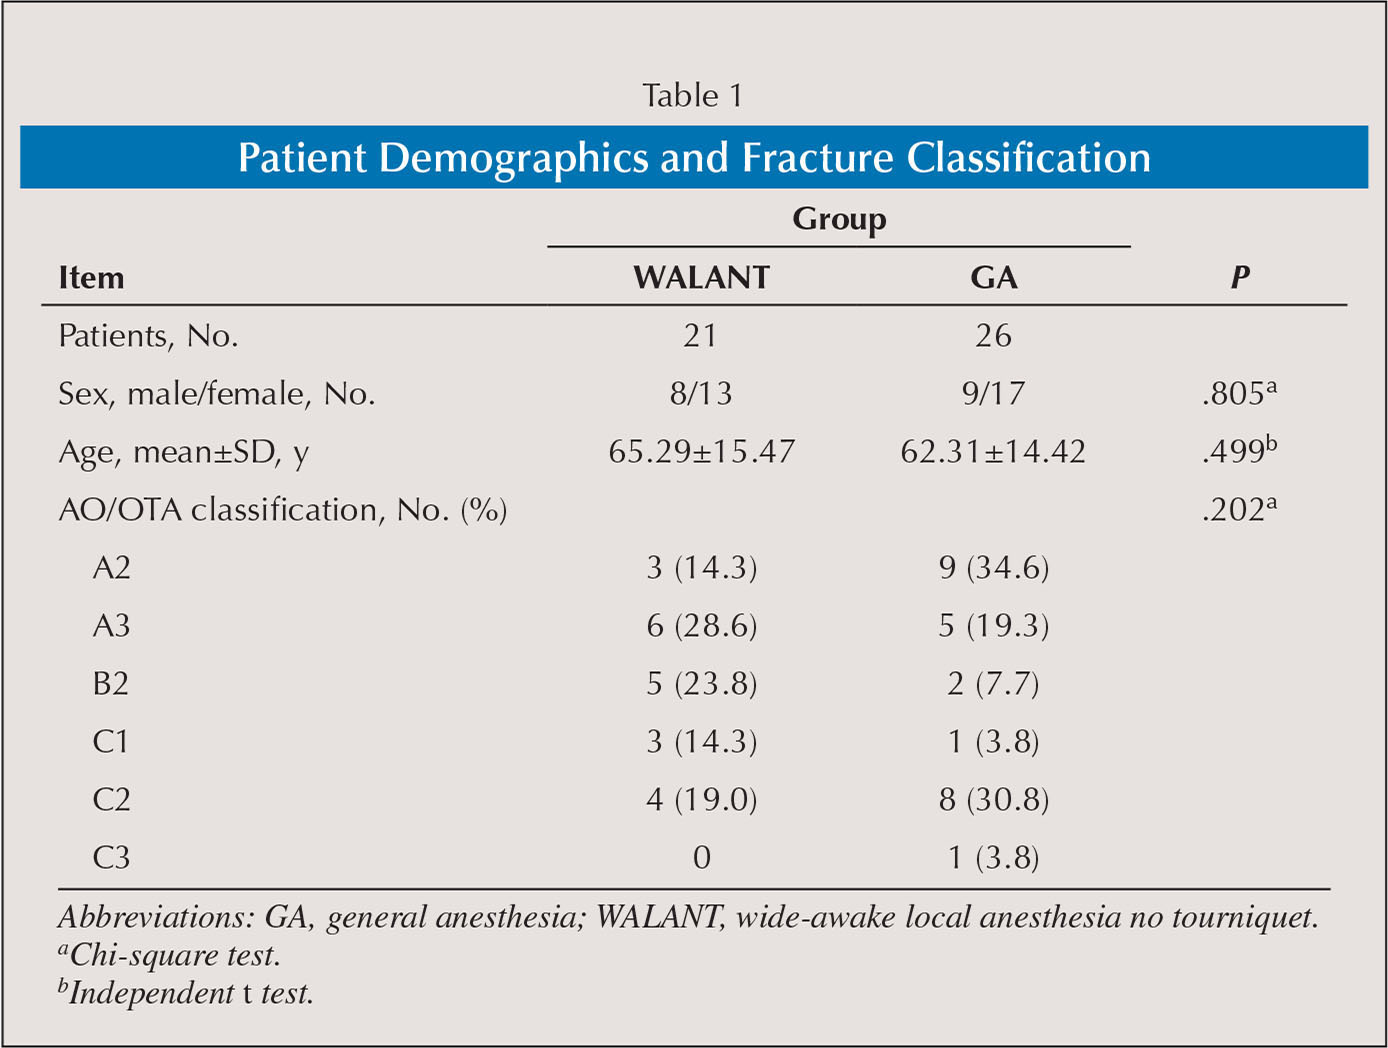 Patient Demographics and Fracture Classification